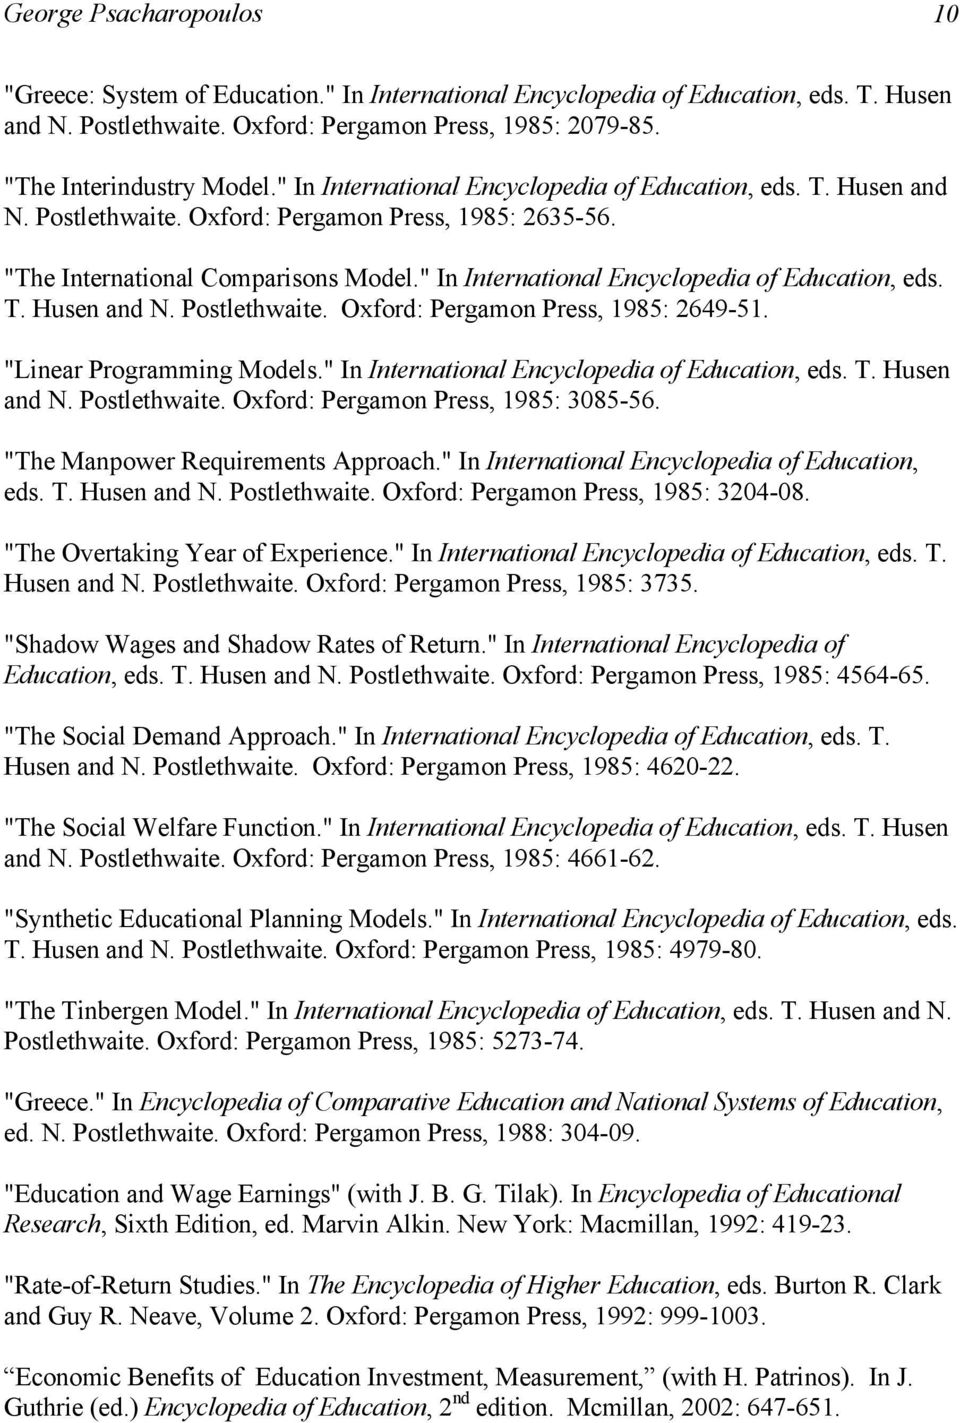 """ In International Encyclopedia of Education, eds. T. Husen and N. Postlethwaite. Oxford: Pergamon Press, 1985: 2649-51. ""Linear Programming Models."" In International Encyclopedia of Education, eds. T. Husen and N. Postlethwaite. Oxford: Pergamon Press, 1985: 3085-56."